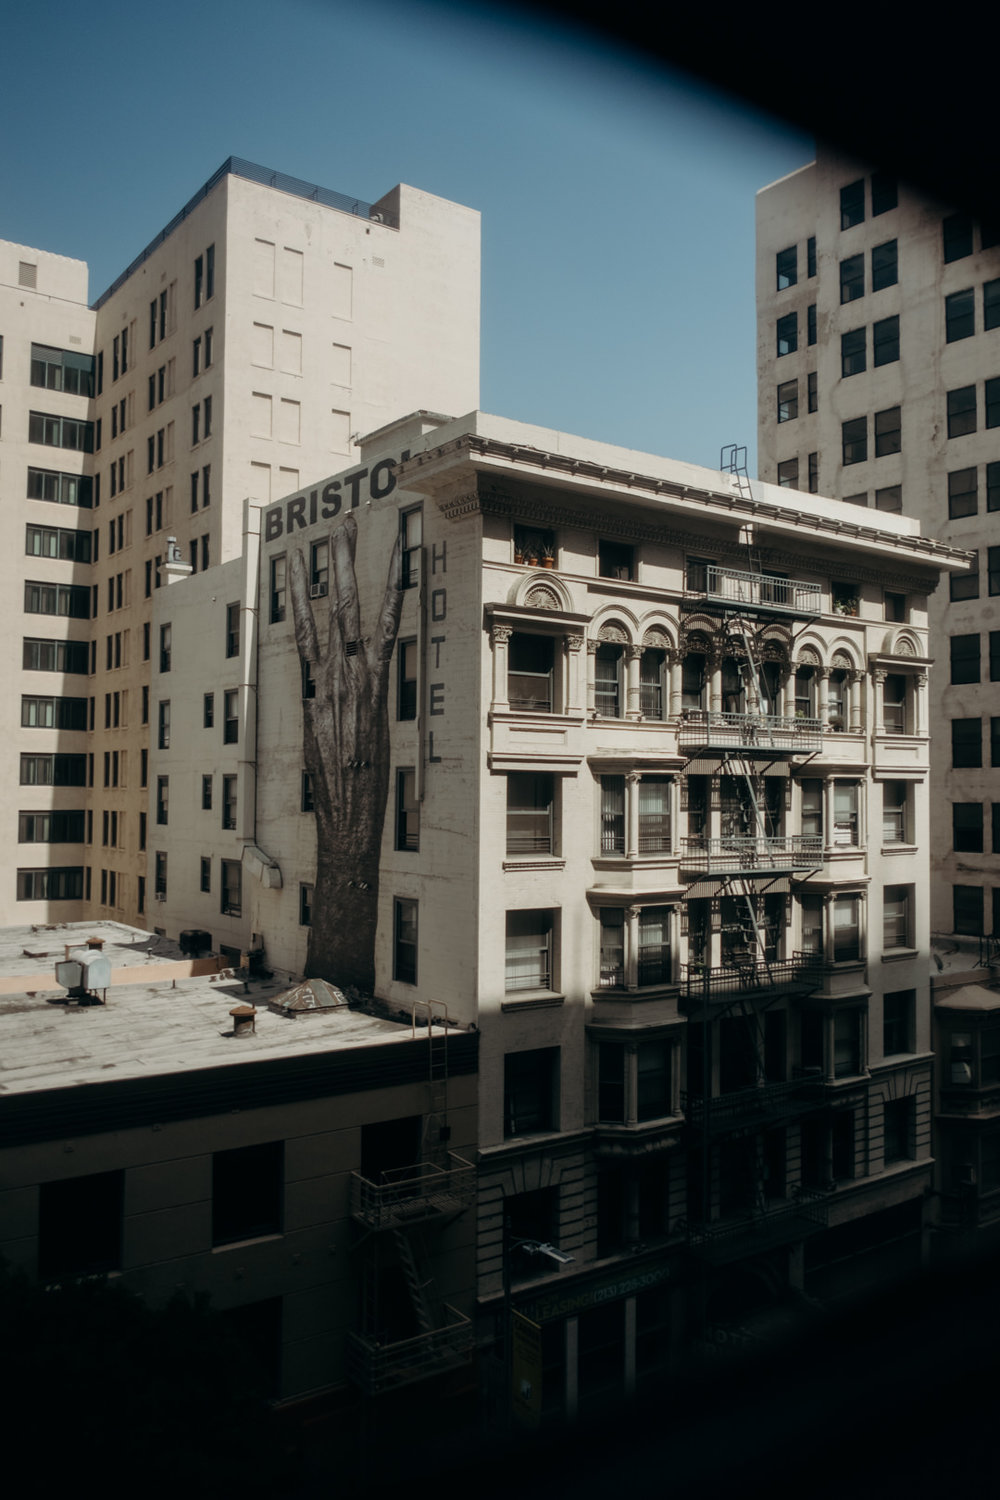 20180404_Freehand Los Angeles - Best Hotel DTLA_9.jpg